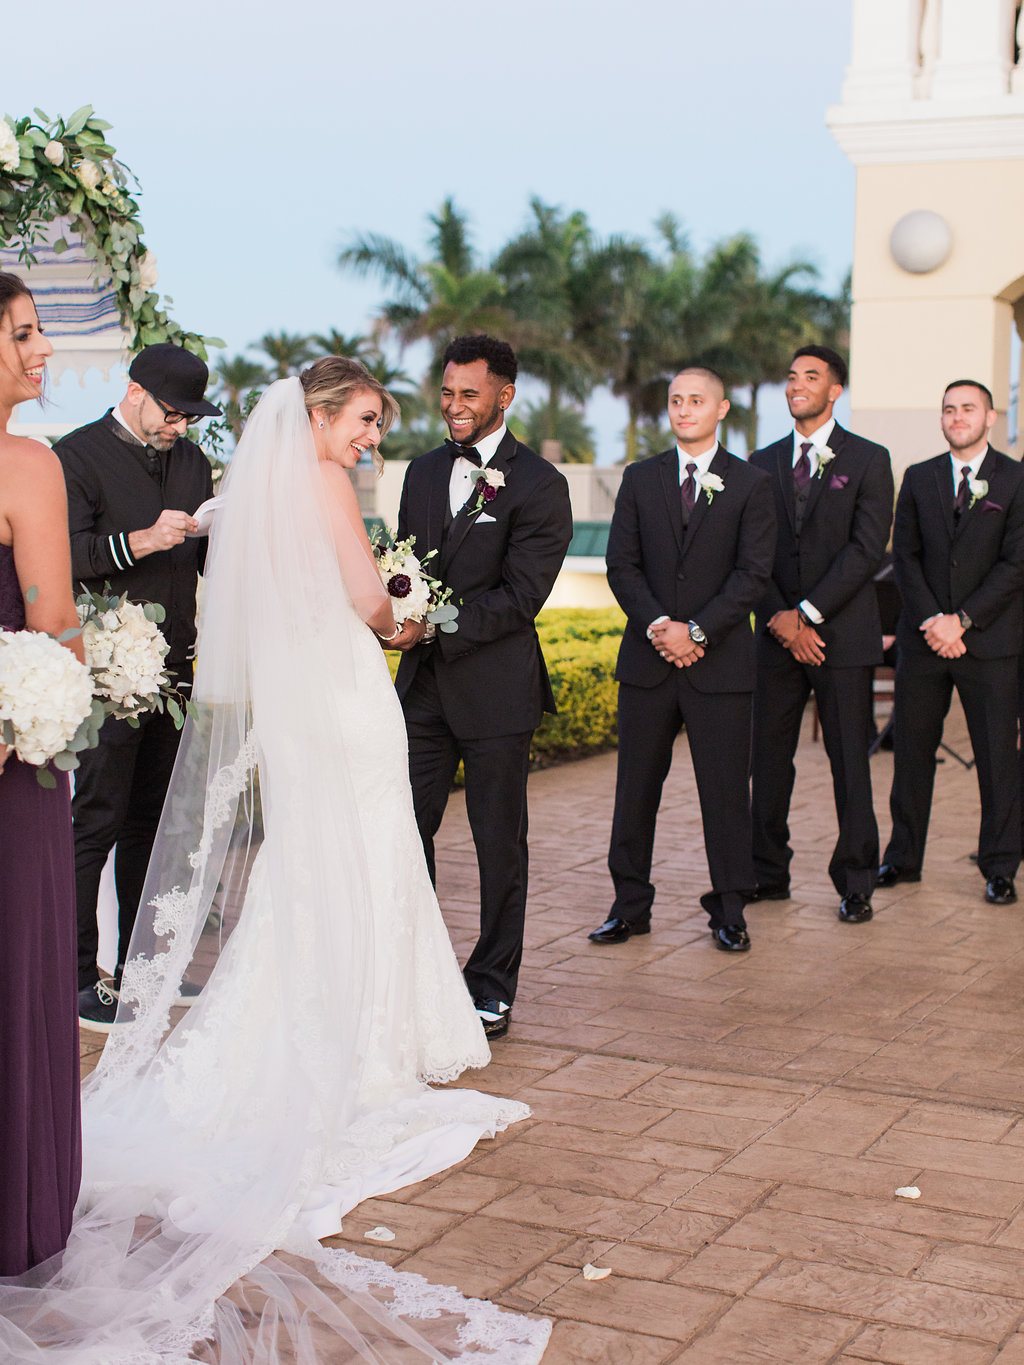 Outdoor Wedding Ceremony Portrait, Bride in Illusion Spaghetti Strap Illusion Lowback Lace Dress and Cathedral Long Veil, Groom in Black Tuxedo and Red and White Flower Boutonniere, Groomsmen in Black Tuxedos and Deep Purple Ties with White Flower Boutonniere, Greenery and White Rose Arch   Clearwater Beach Wedding Venue Feather Sound Country Club